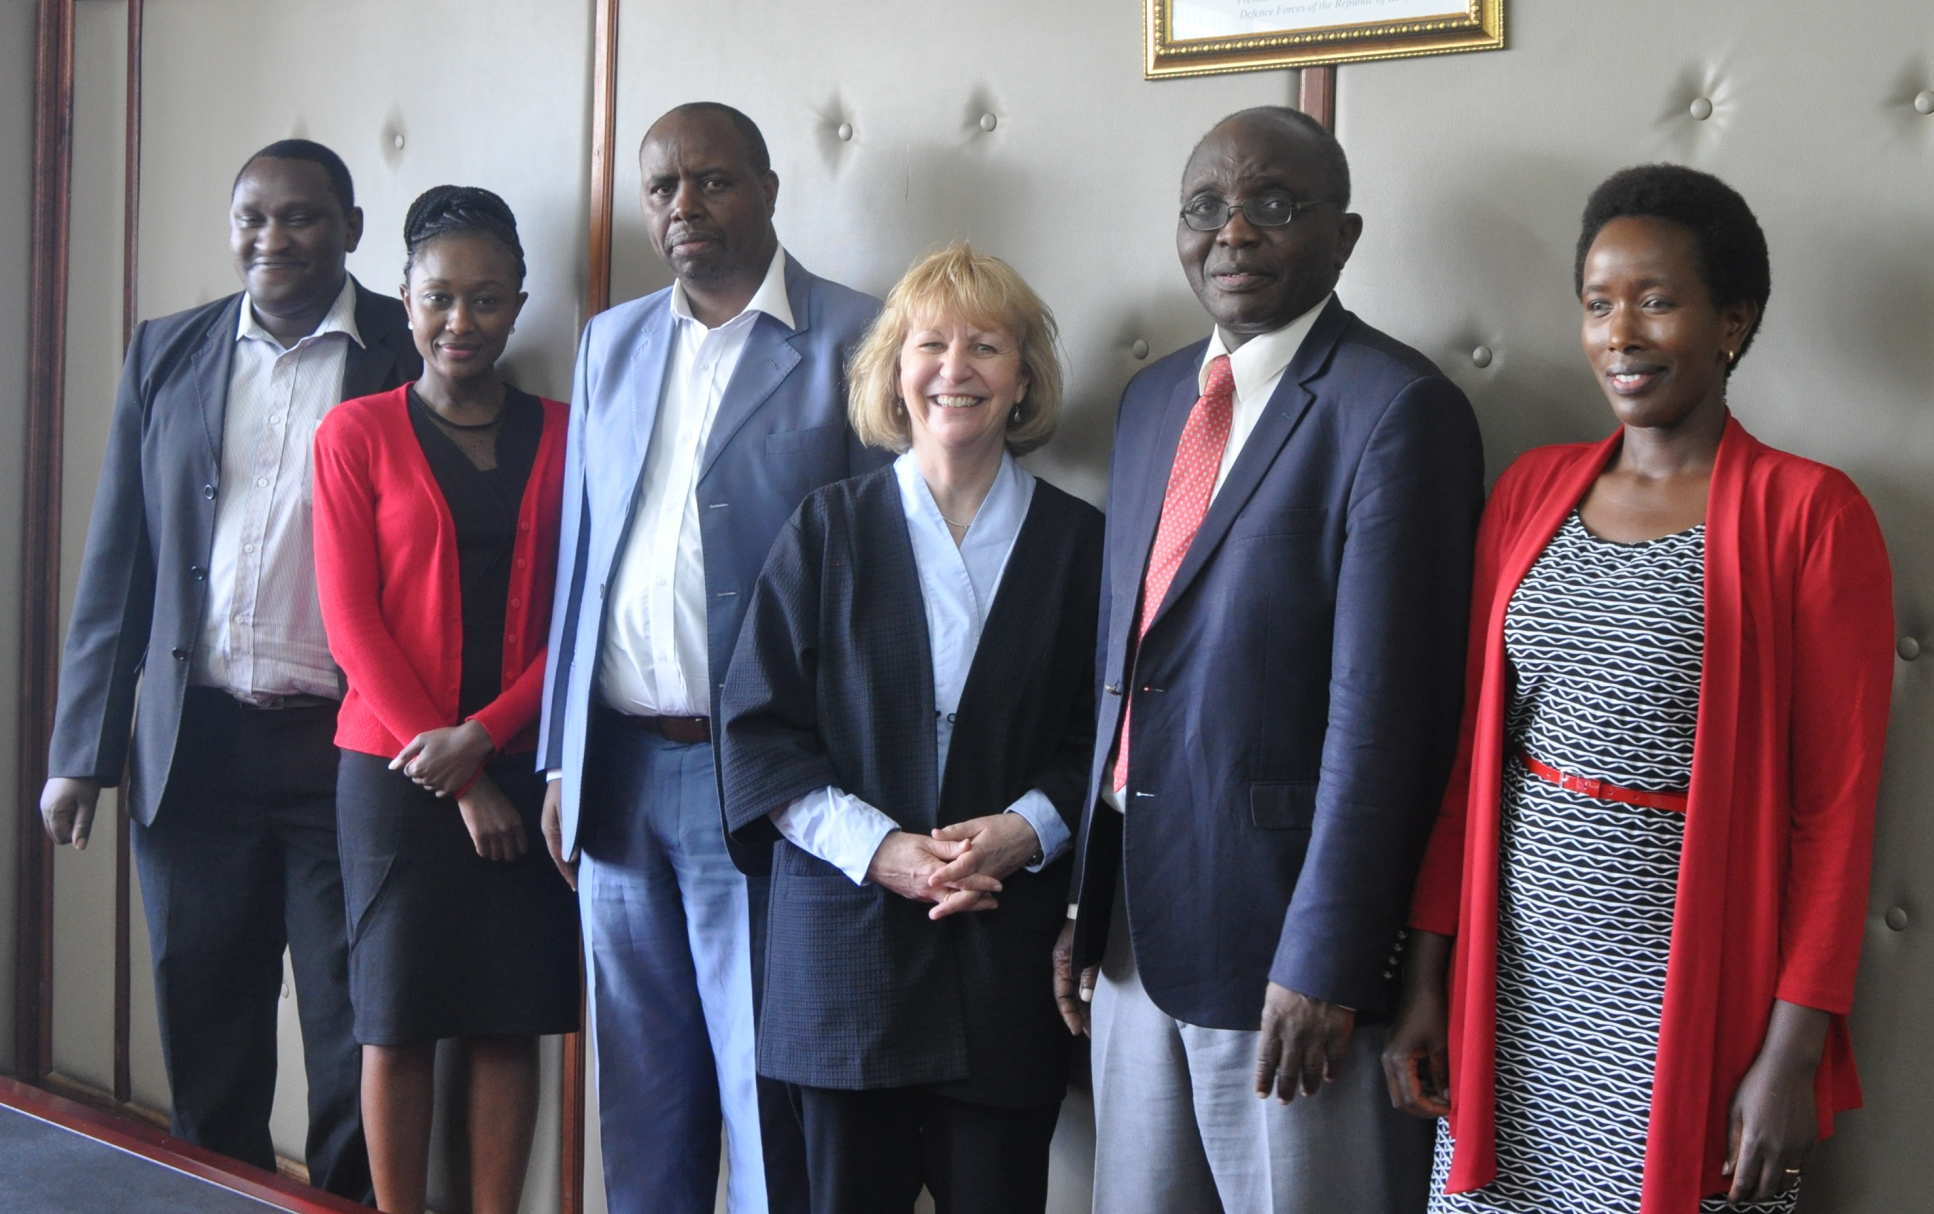 While in Kenya, Professor Dallman met with the Director of the Ministry of Education and the Science Innovation officer.